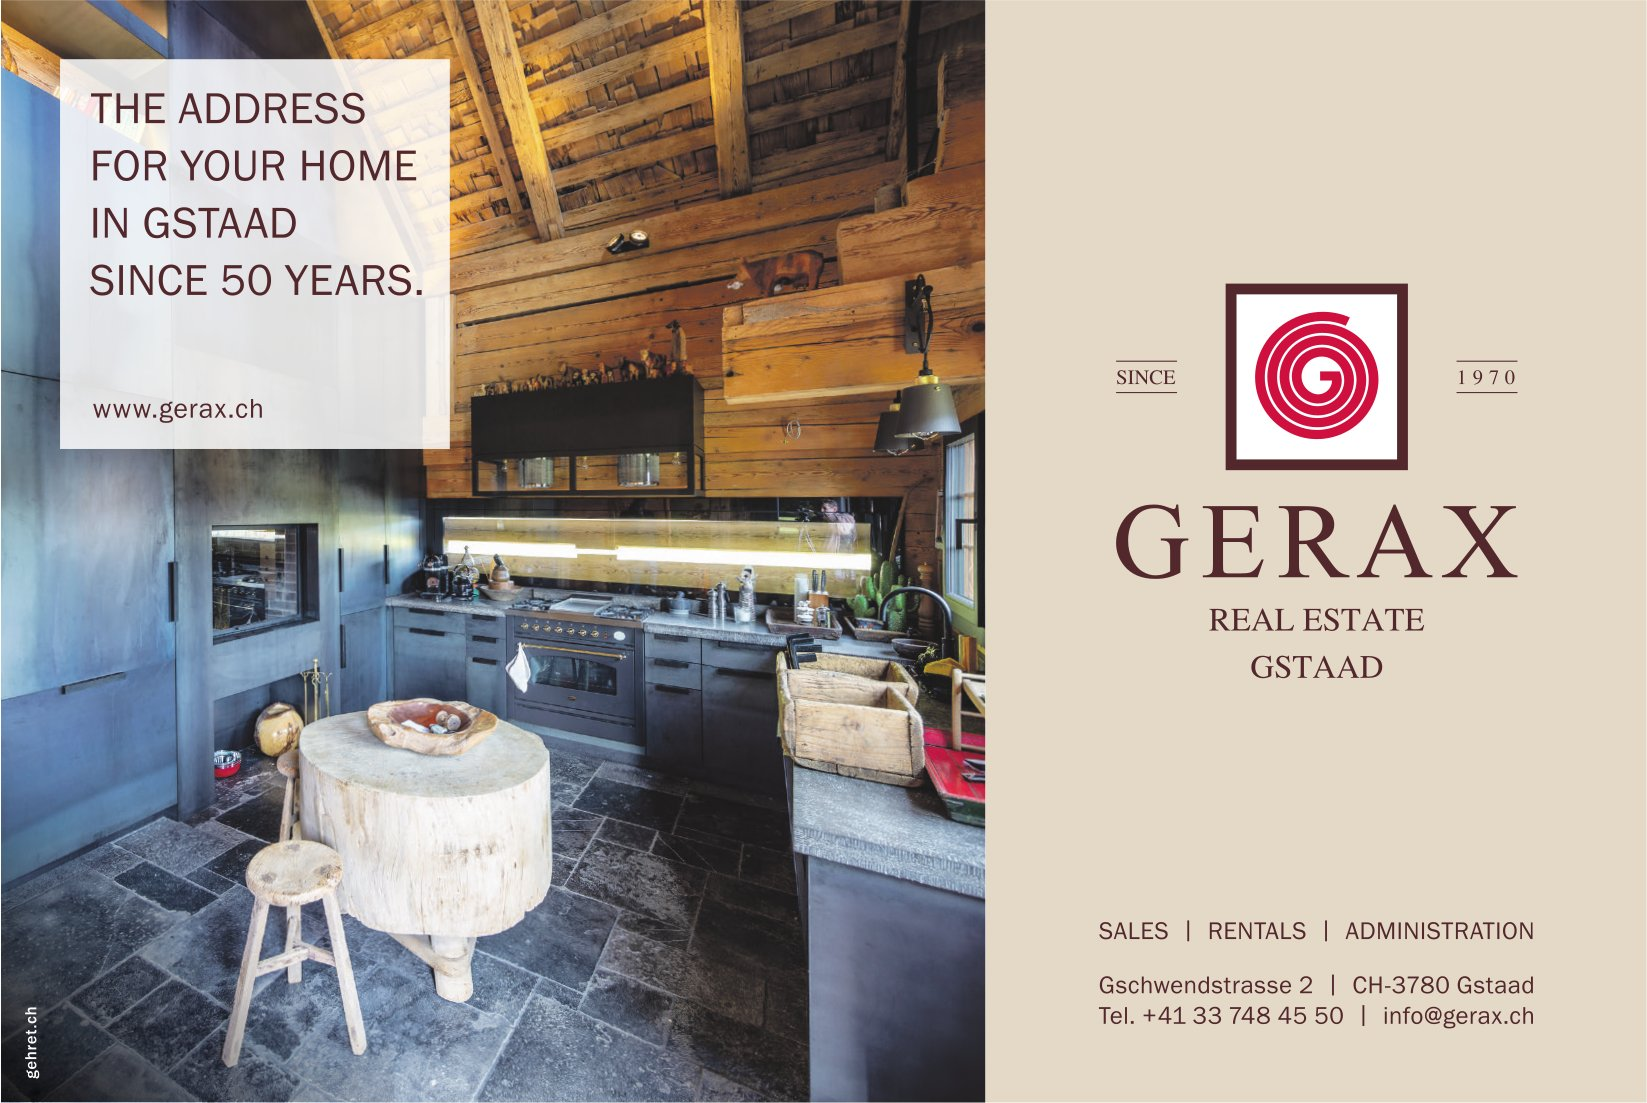 GERAX, Gstaad - Real Estate Gstaad